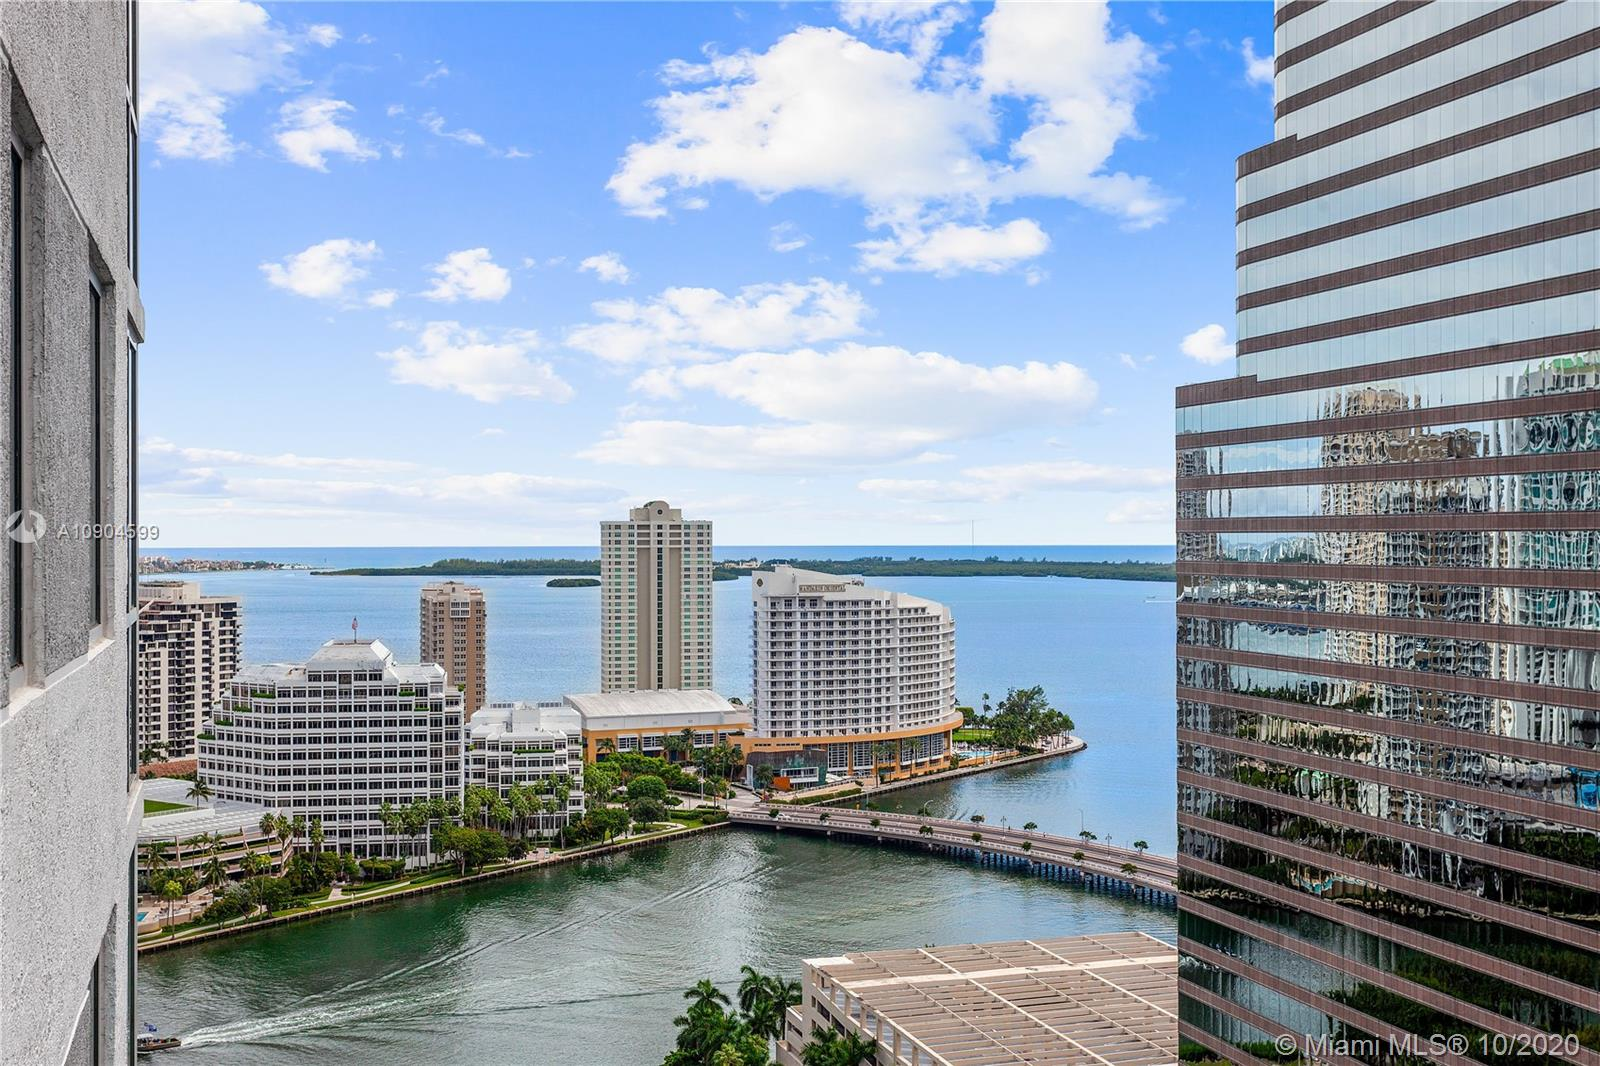 BEAUTIFULLY FURNISHED WITH MANY UPGRADES. AVERY LARGE UNIT AND SEPARATE WALK-IN CLOSET.THIS LUXURY SMART BUILDING OFFERS HIGH END GYM, 2 INFINITY POOLS, JACUZZI, BUSINESS CENTER AND 24 HOURS SECURITY. PARKING SPACE # 3031